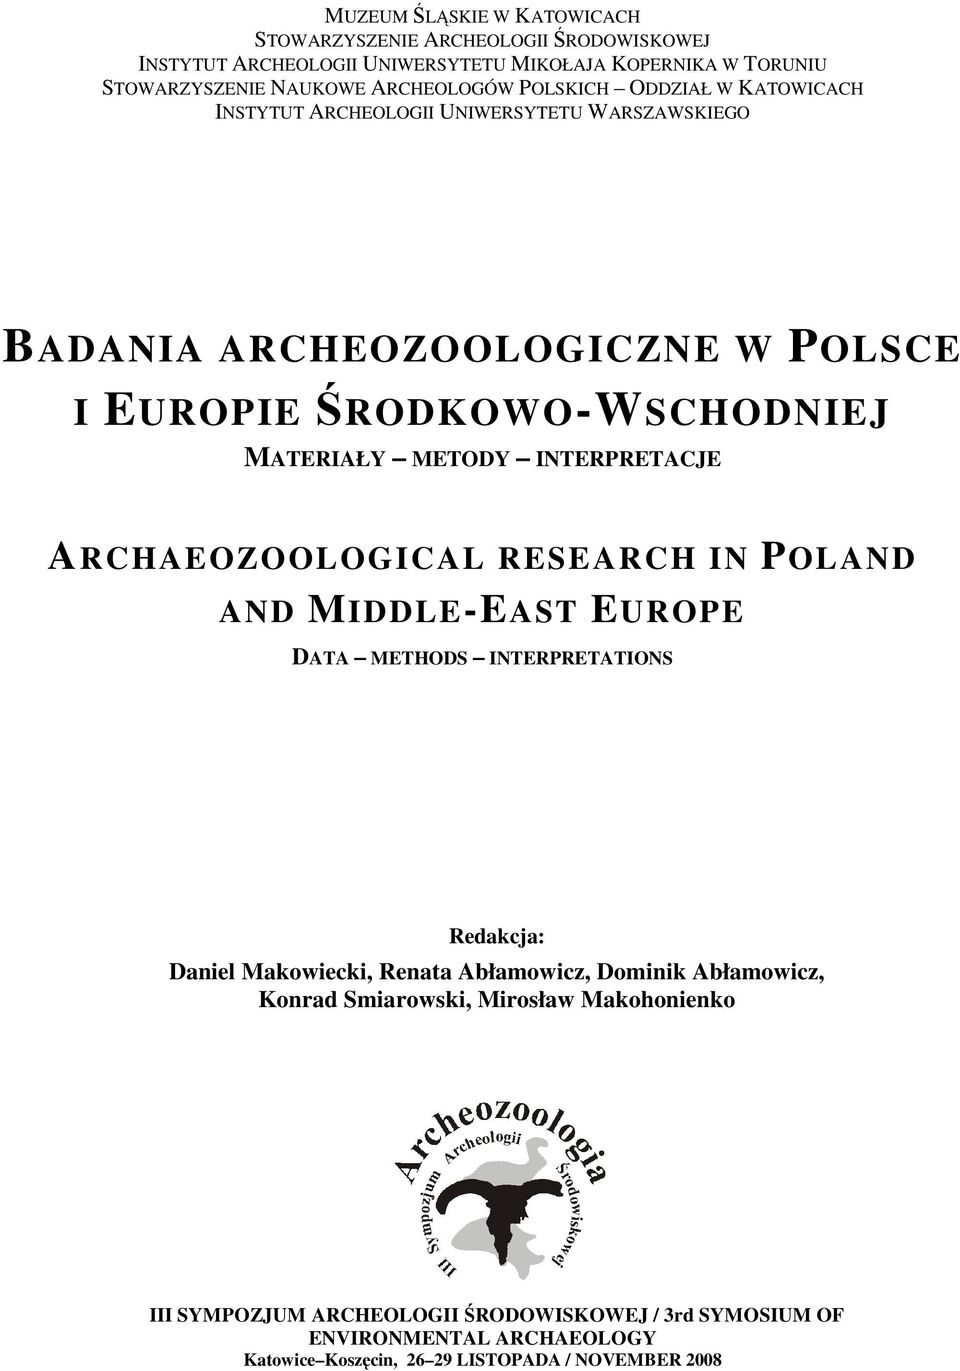 INTERPRETACJE ARCHAEOZOOLOGICAL RESEARCH IN POLAND AND MIDDLE-EAST EUROPE DATA METHODS INTERPRETATIONS Redakcja: Daniel Makowiecki, Renata Abłamowicz, Dominik